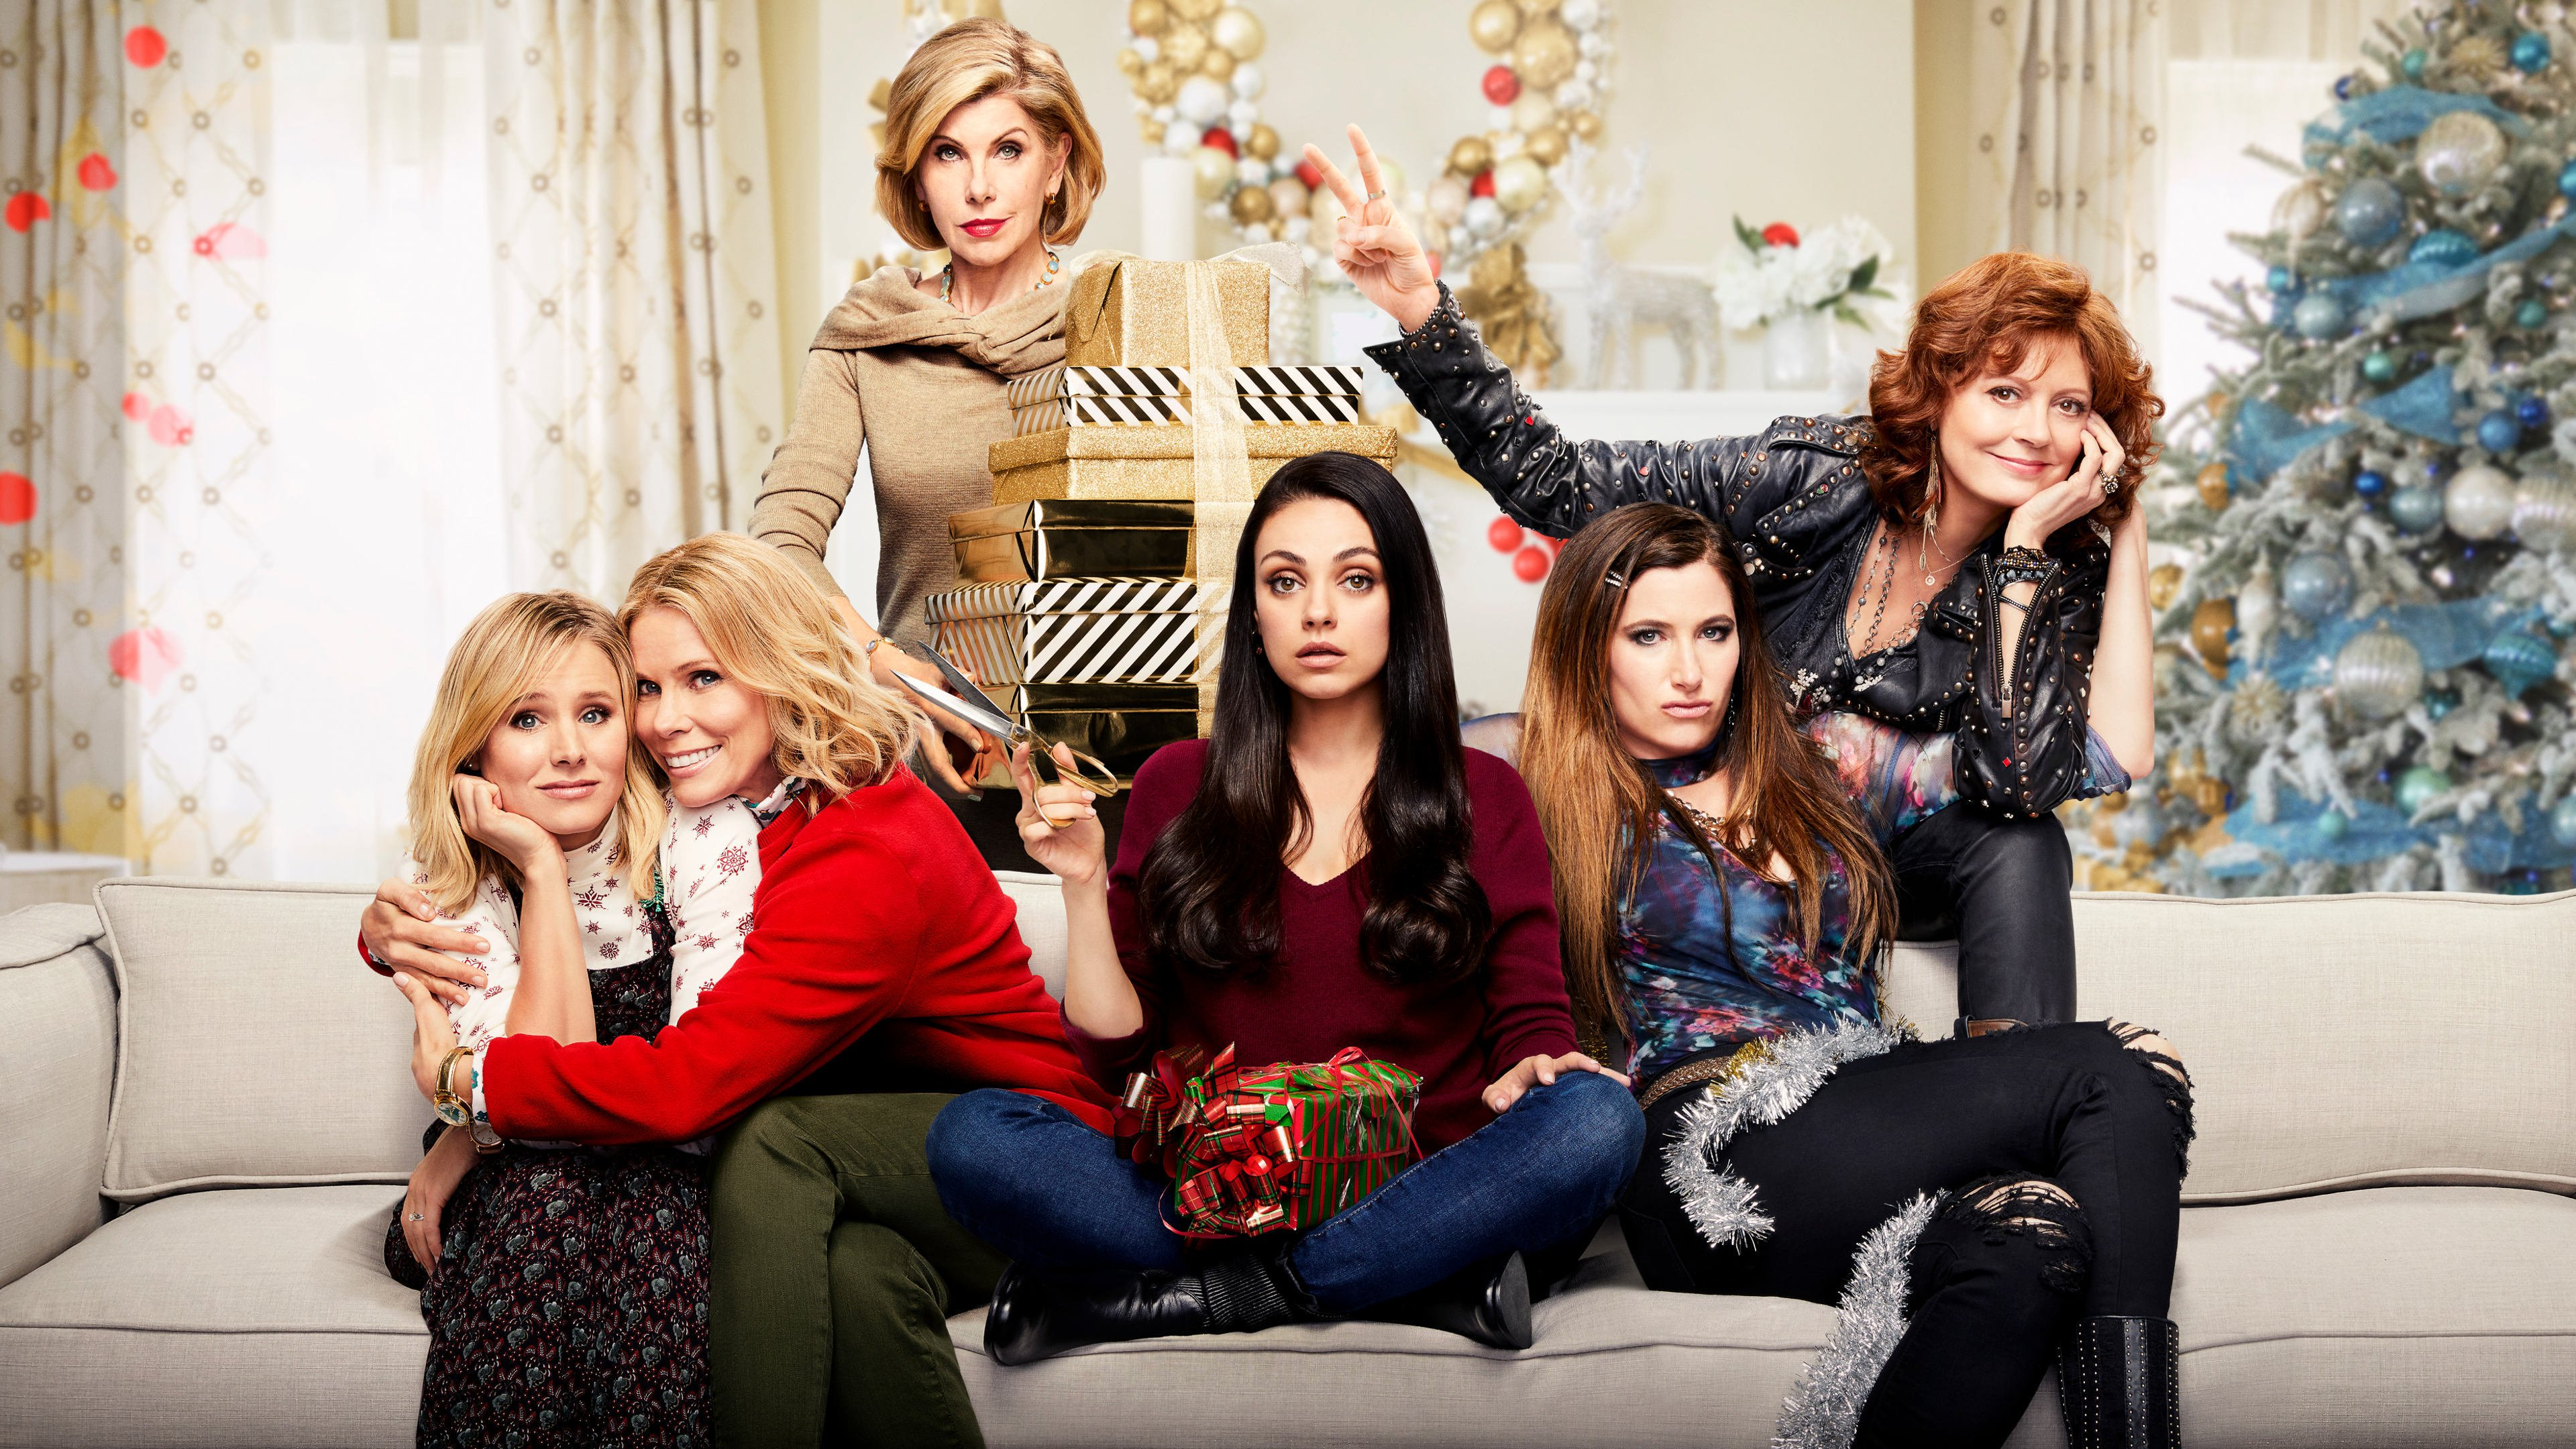 'backdrop-badmoms' from the web at 'http://tylermovies.com/wp-content/uploads/2017/11/backdrop-badmoms.jpg'